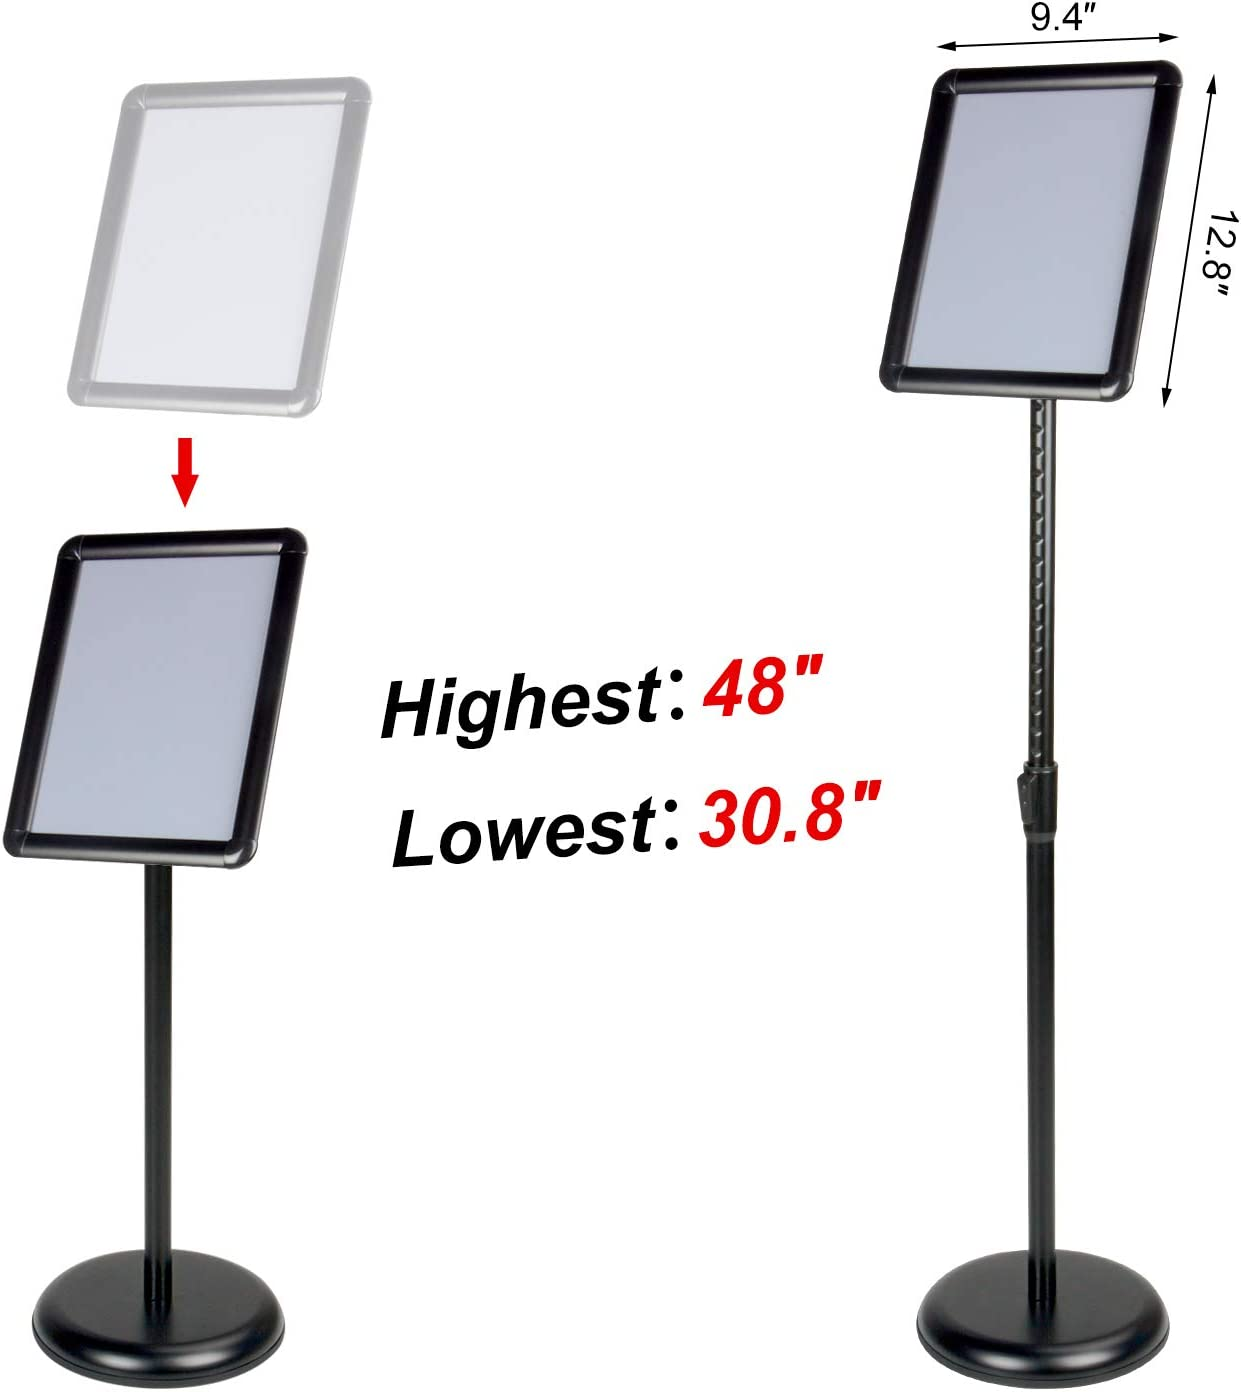 11 x17 Inch Floor Standing Poster Sign Holder with Round Corner Vertical and Horizontal View Sign Displayed Wevalor Adjustable Pedestal Sign Stand Silver